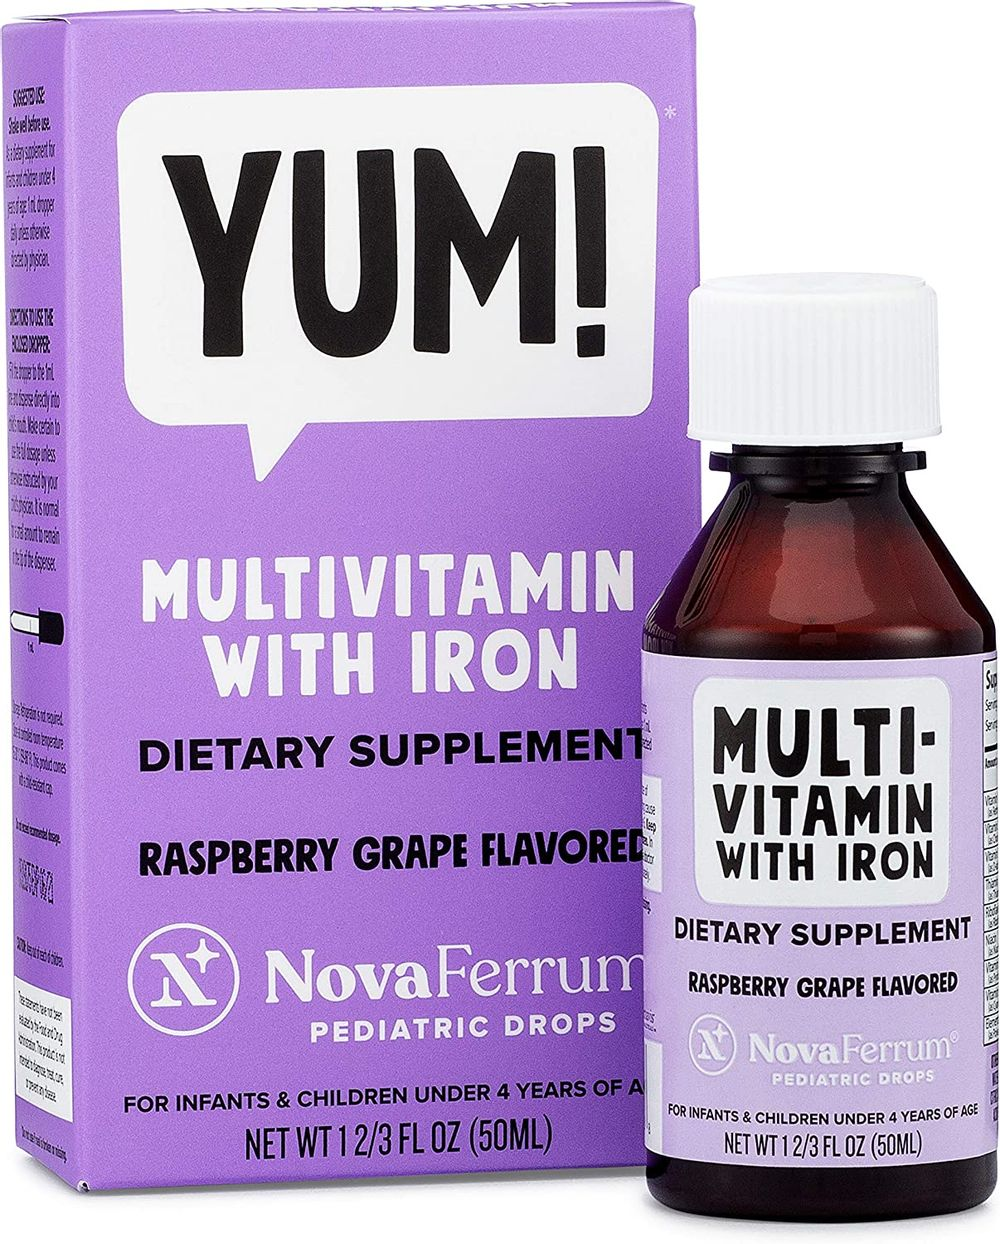 NovaFerrum Multivitamin with Iron for Infants and Toddlers 2 fl oz (50 mL)